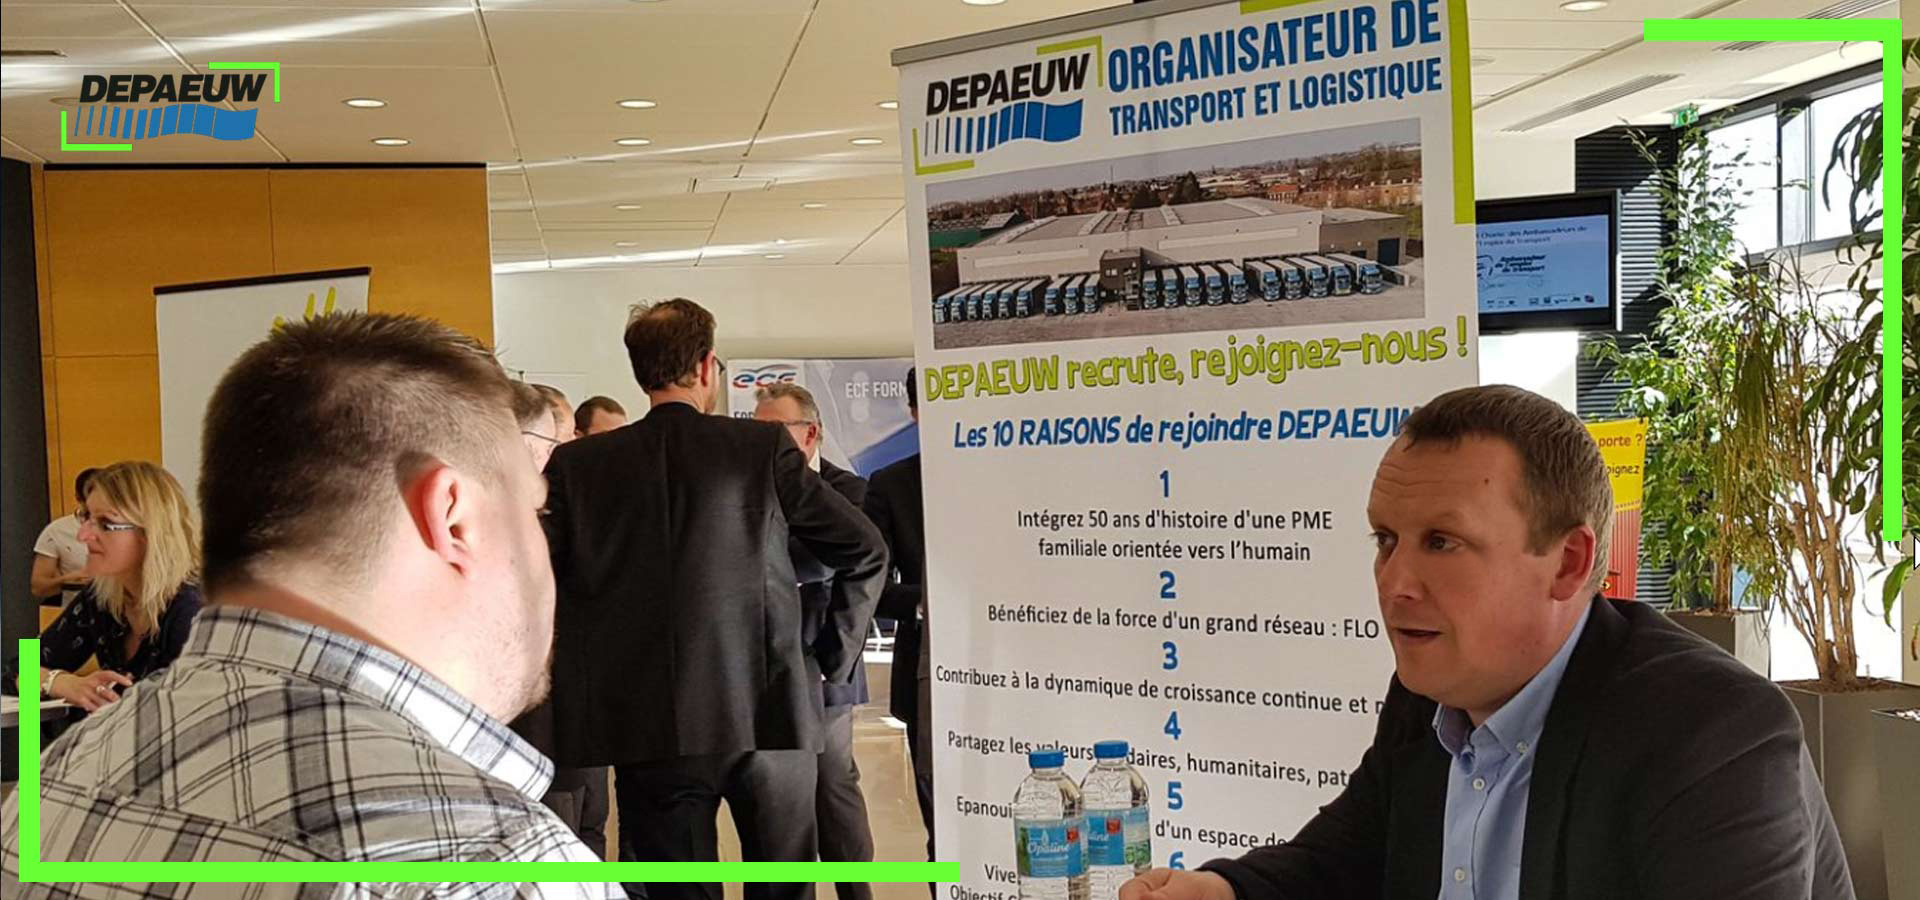 Recrutement : DEPAEUW présent au forum Log and Play 2019